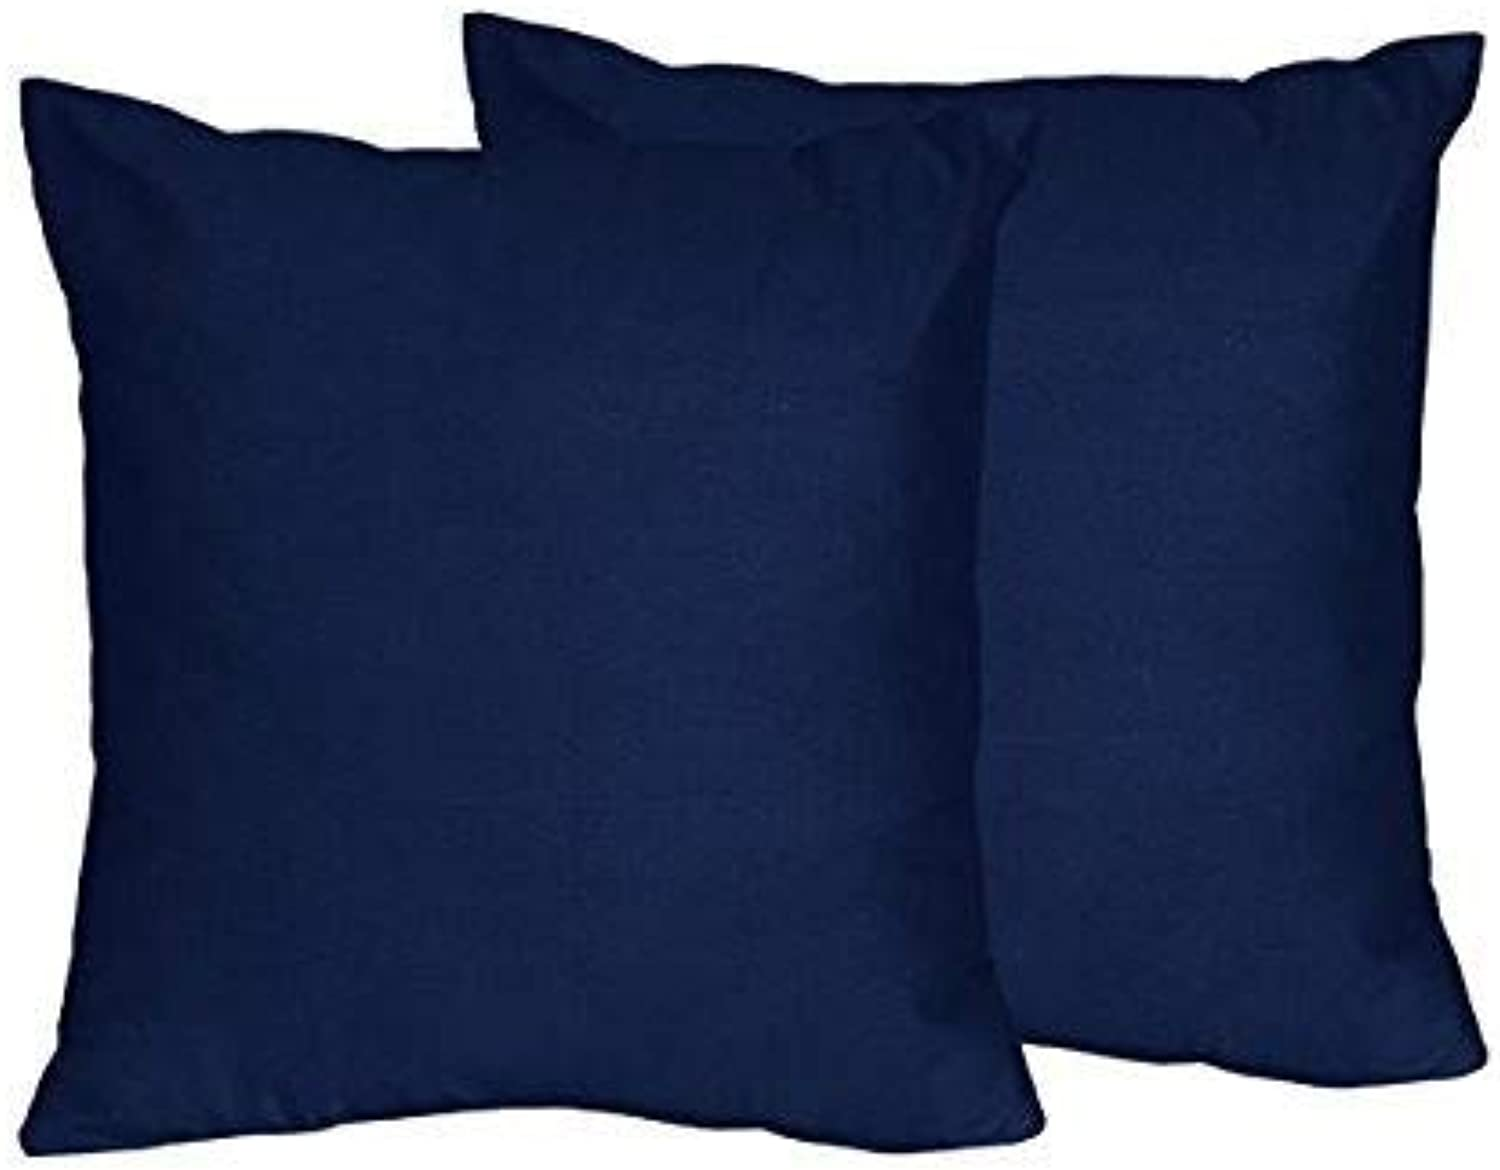 Sweet Jojo Designs 2-Piece Solid Navy bluee Decorative Accent Throw Pillows for Navy and Lime Stripe Collection